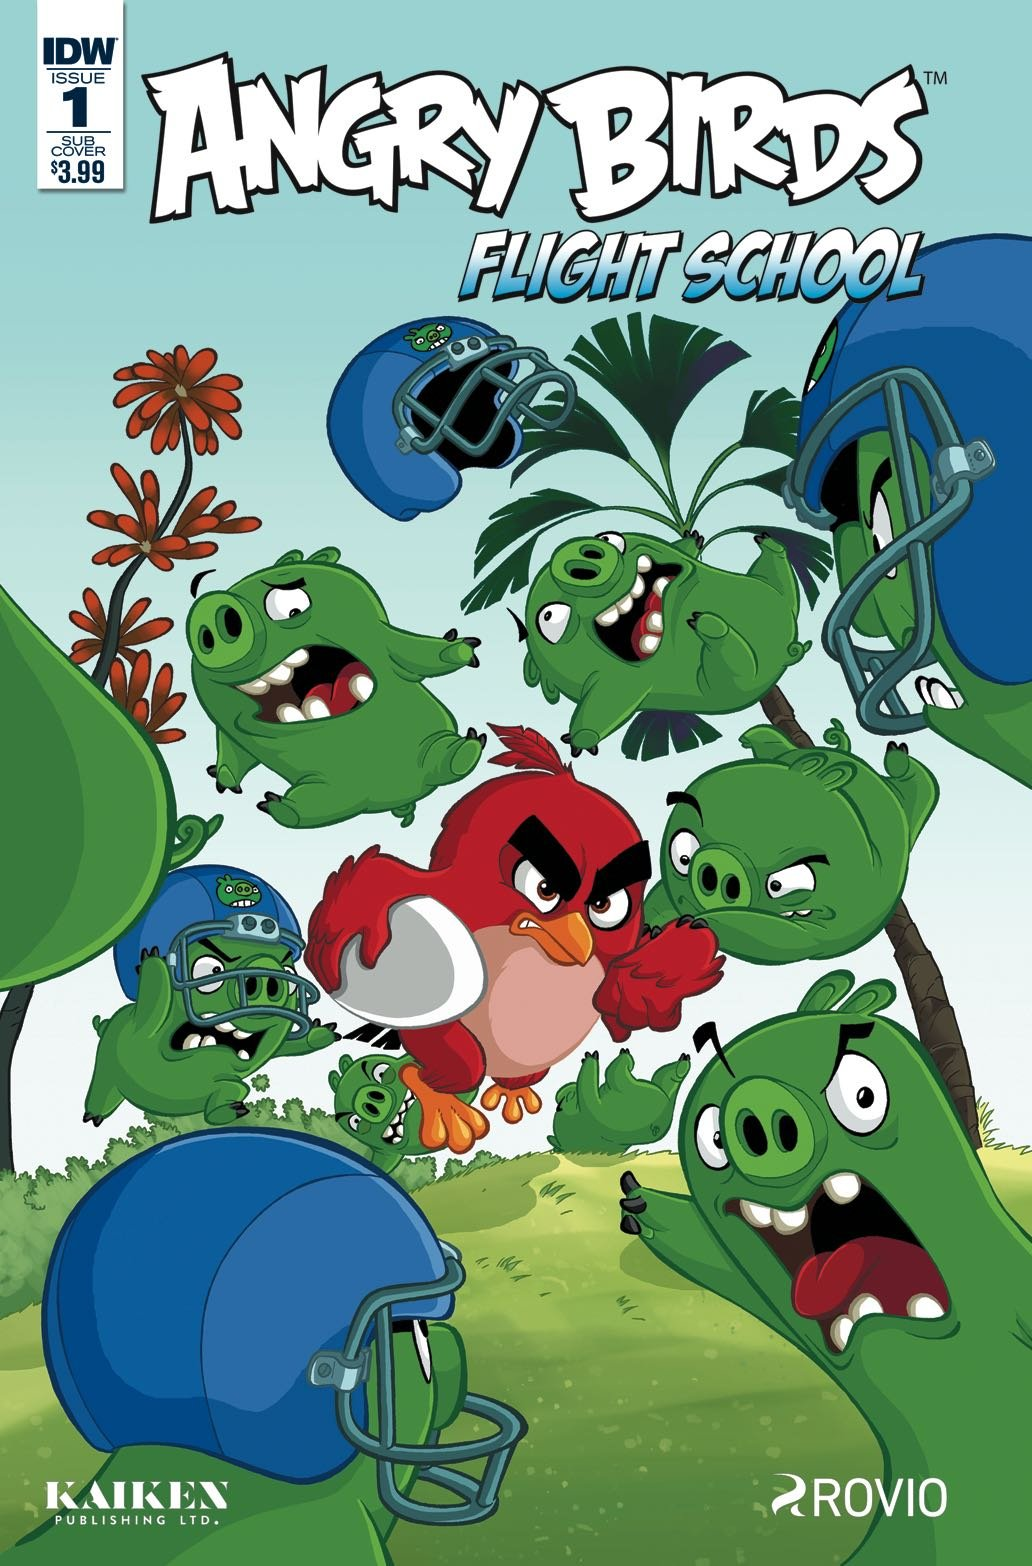 Angry Birds - Flight School 001 (February 2017) (subscriber cover)